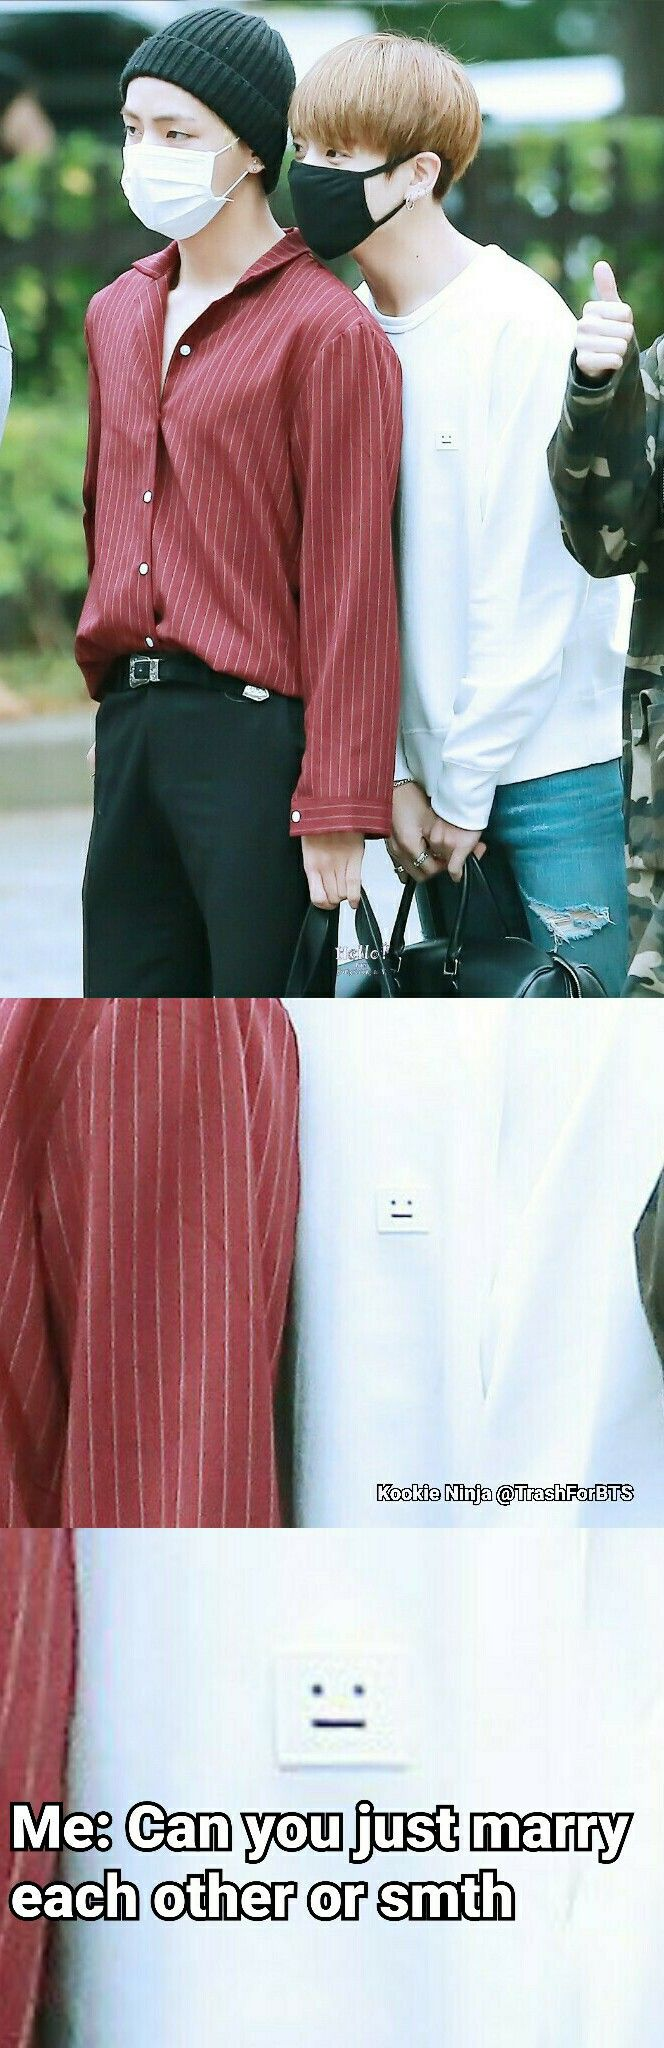 I know they're best friends but I ship it so much it hurts | BTS - Vkook/ Taekook